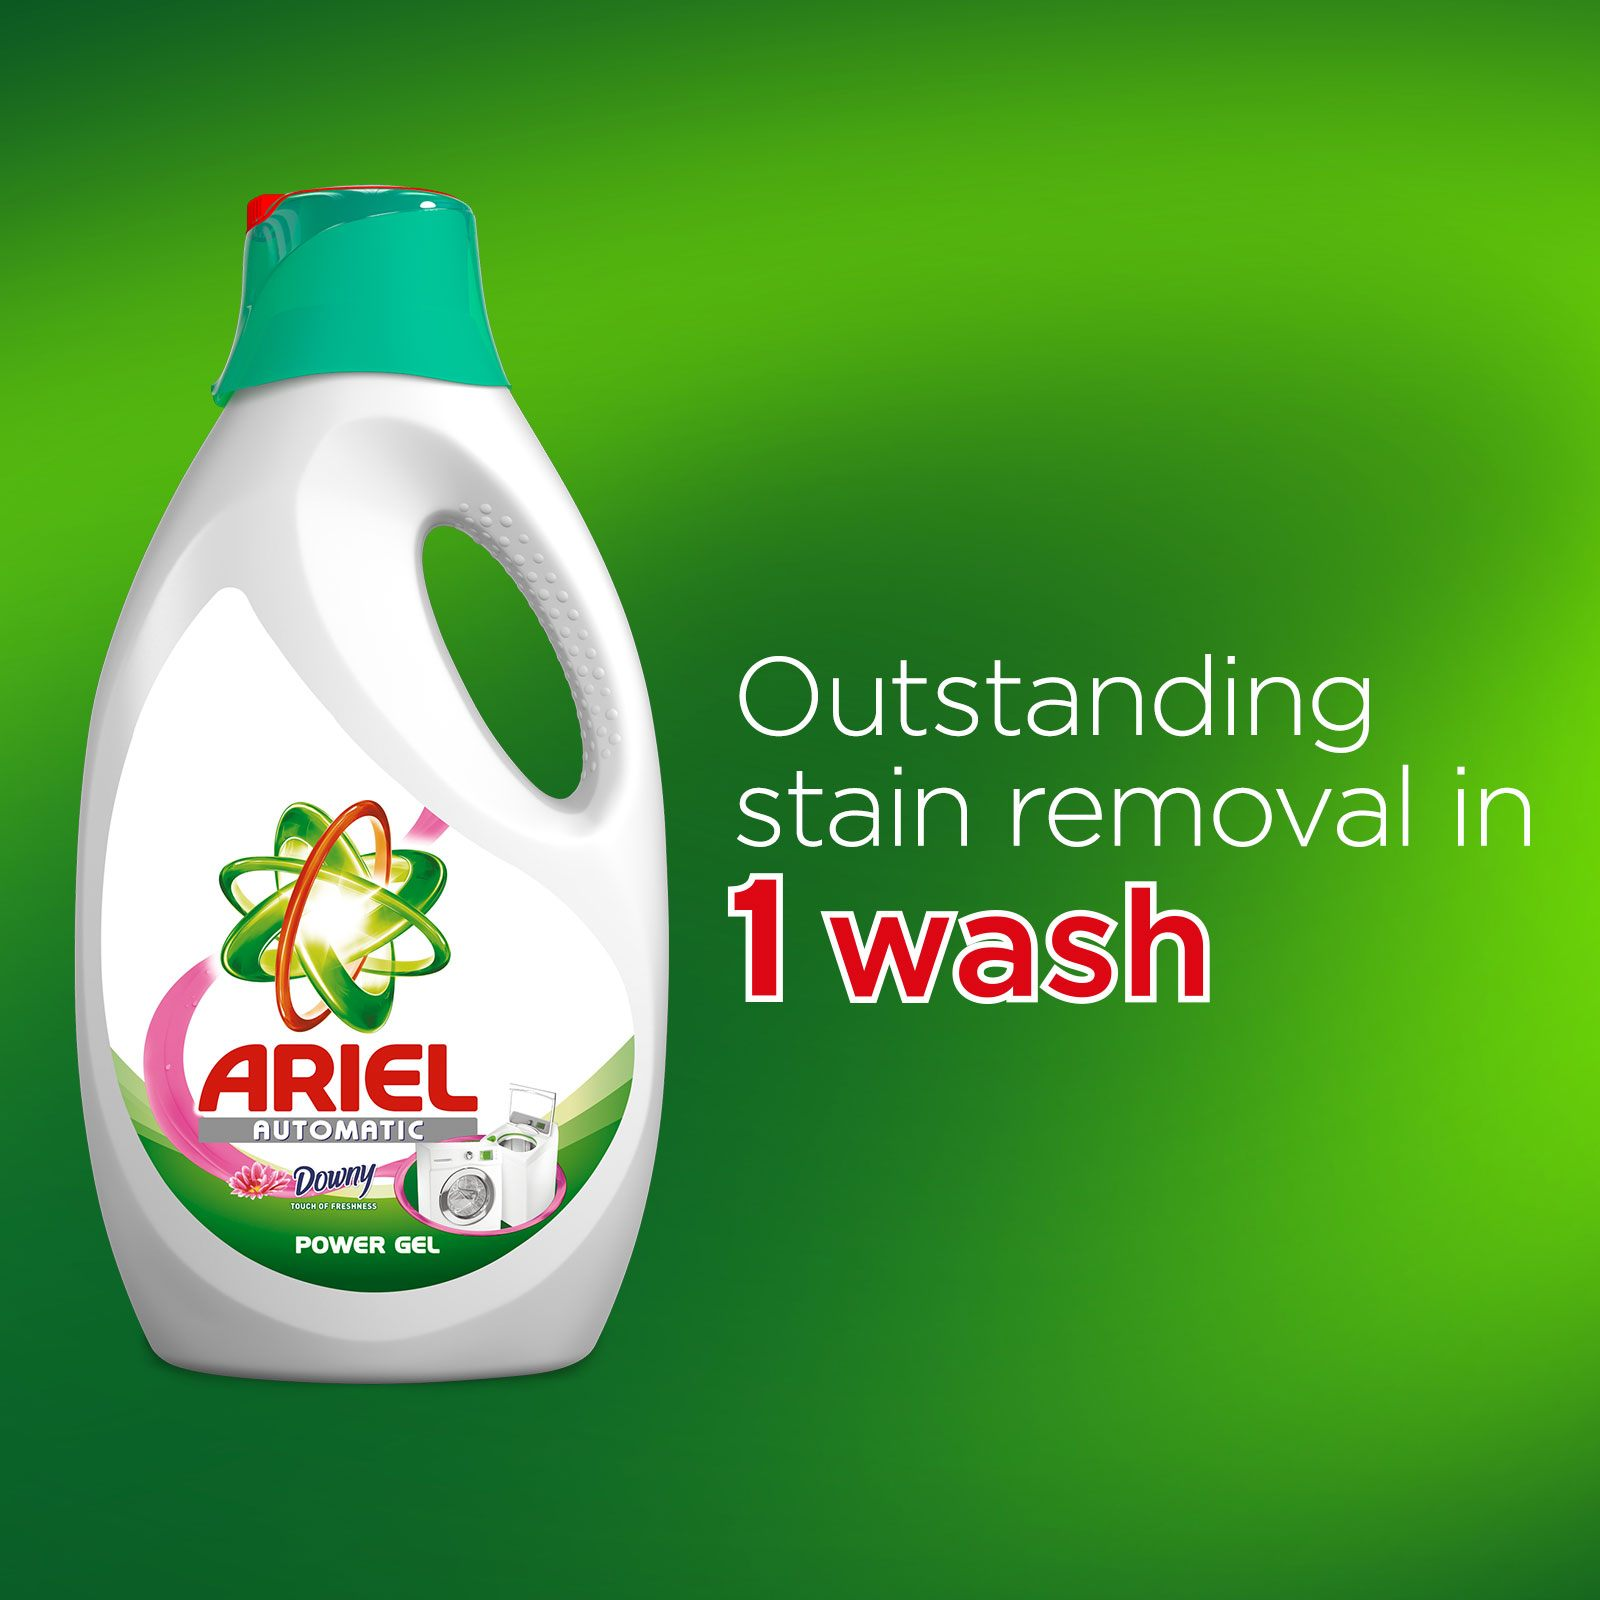 Outstanding stain removal in 1 wash